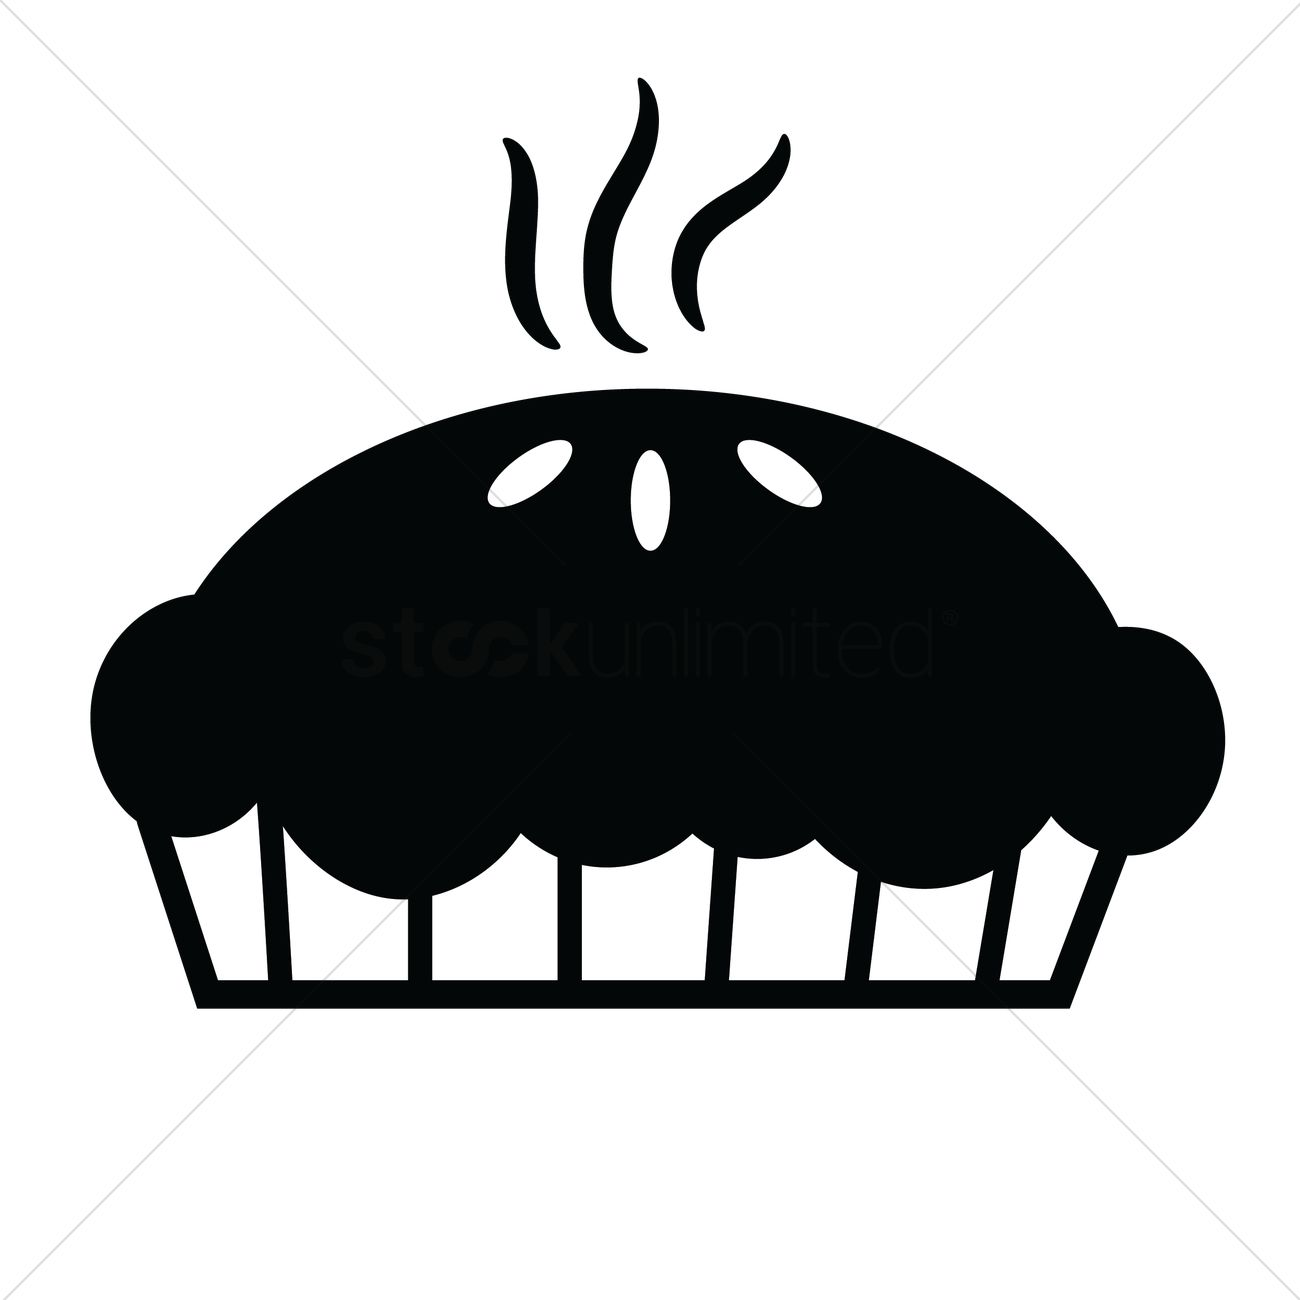 baked pie vector graphic - Baked Pie PNG